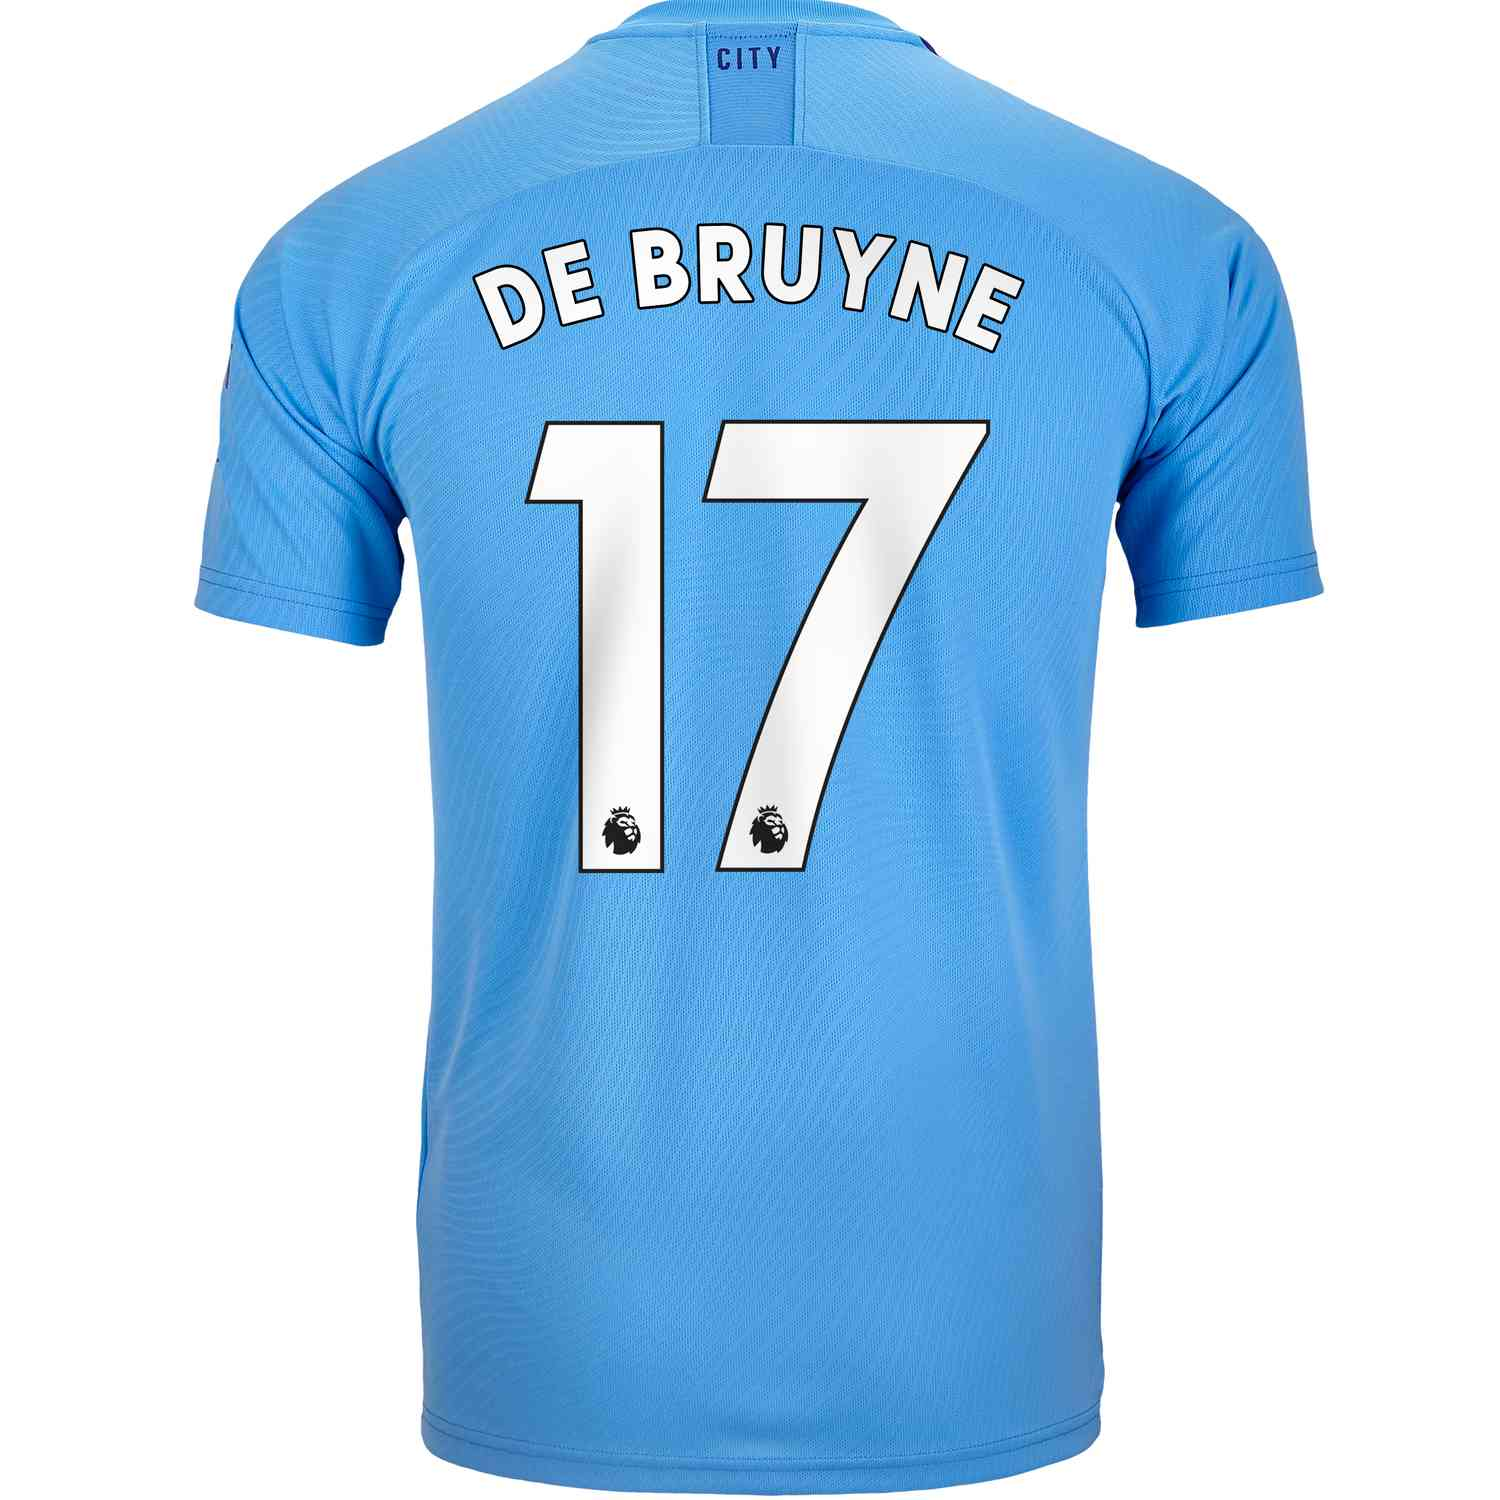 various colors fc7a4 03099 2019/20 Kids Kevin De Bruyne Manchester City Home Jersey